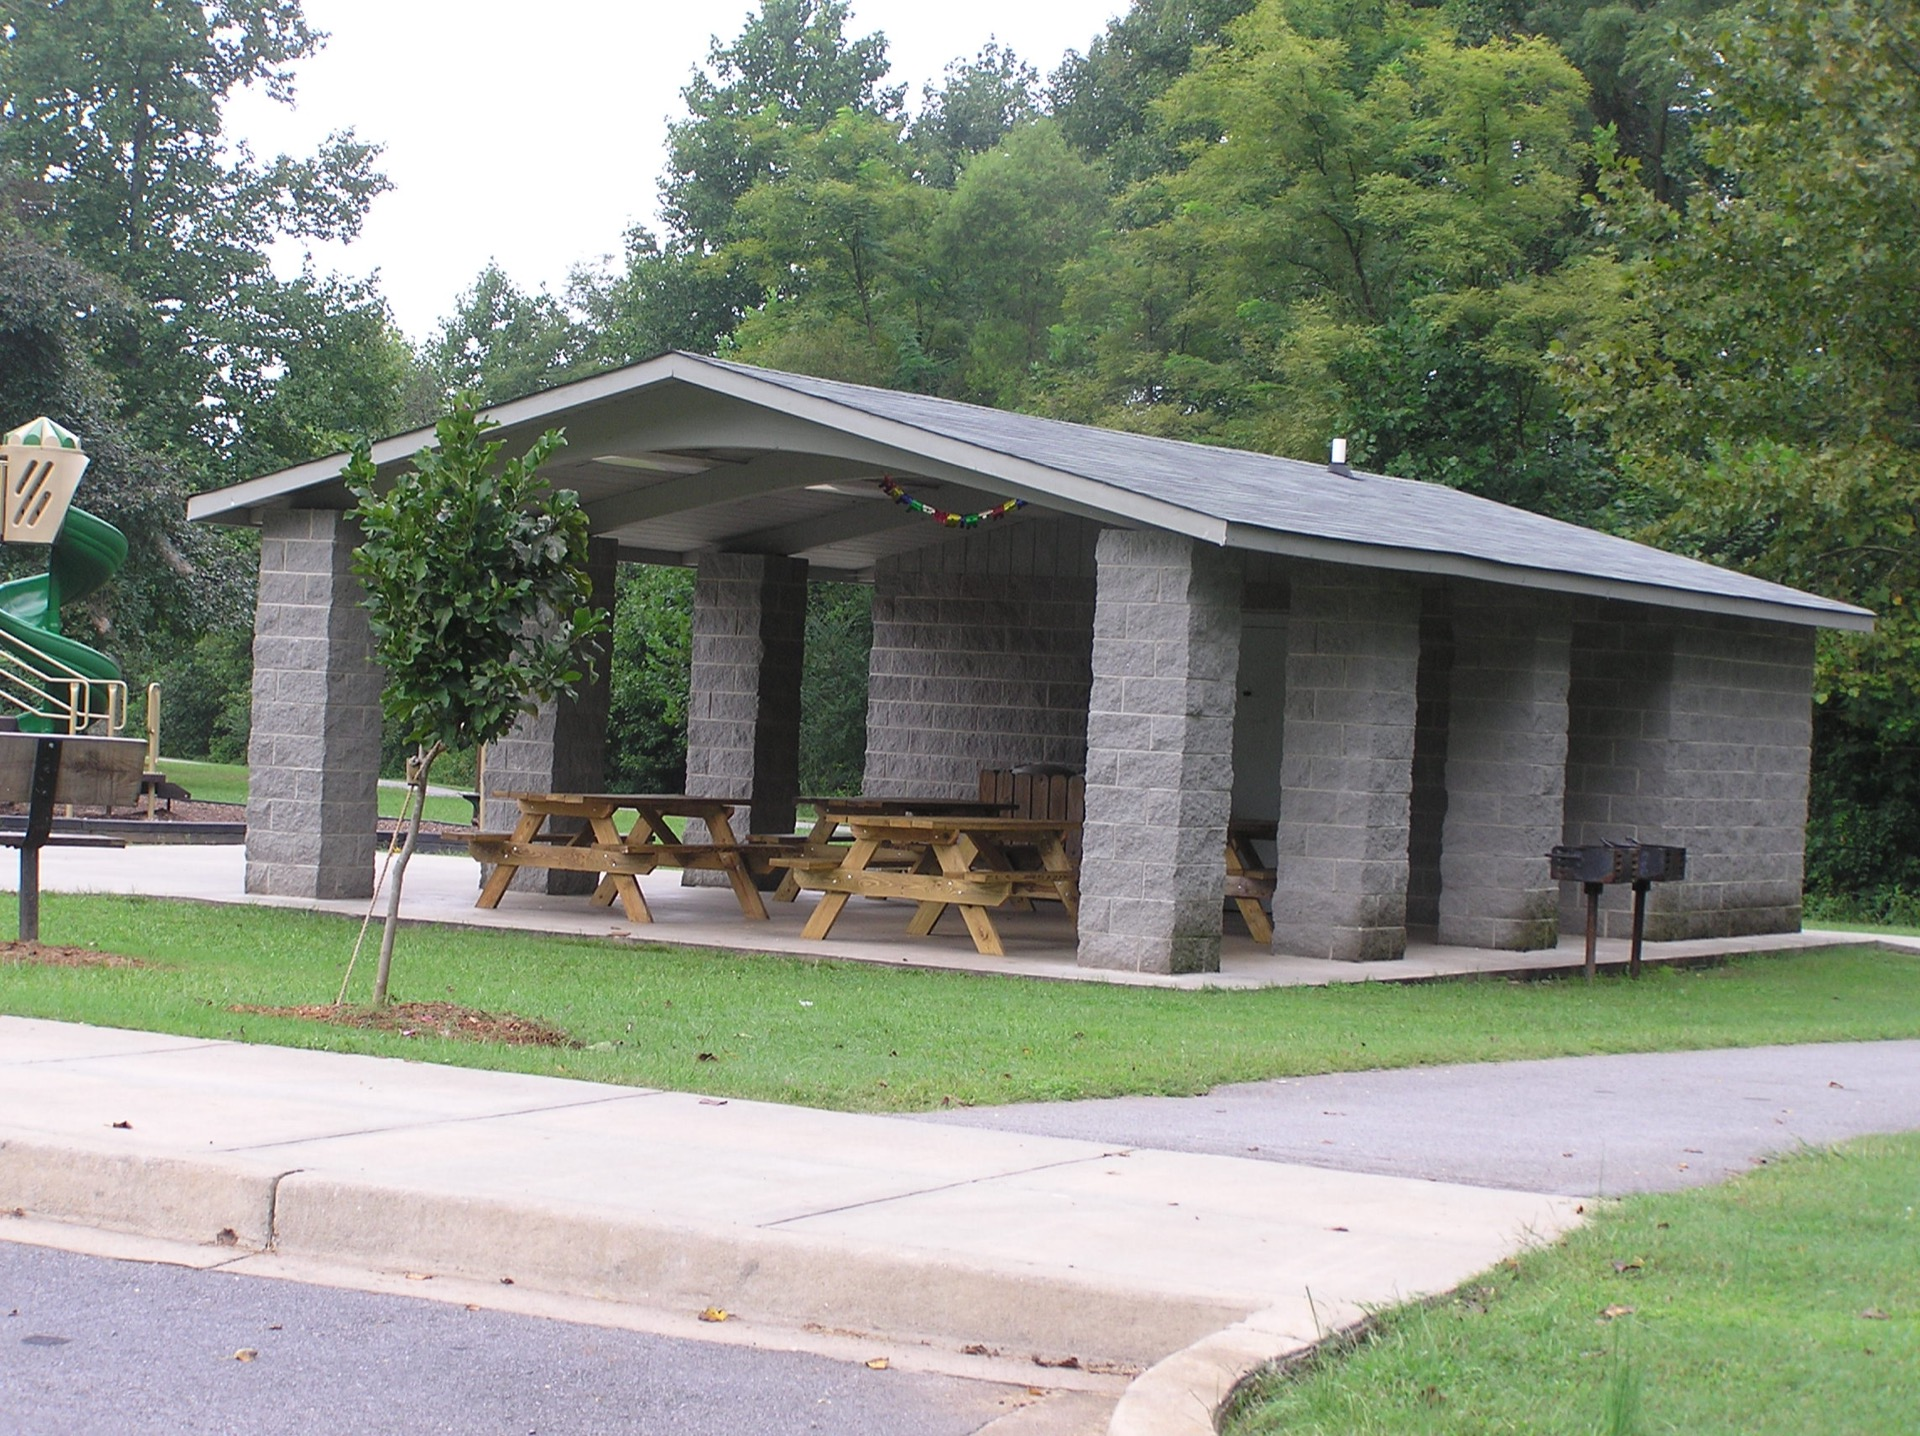 Poinsett Park shelter